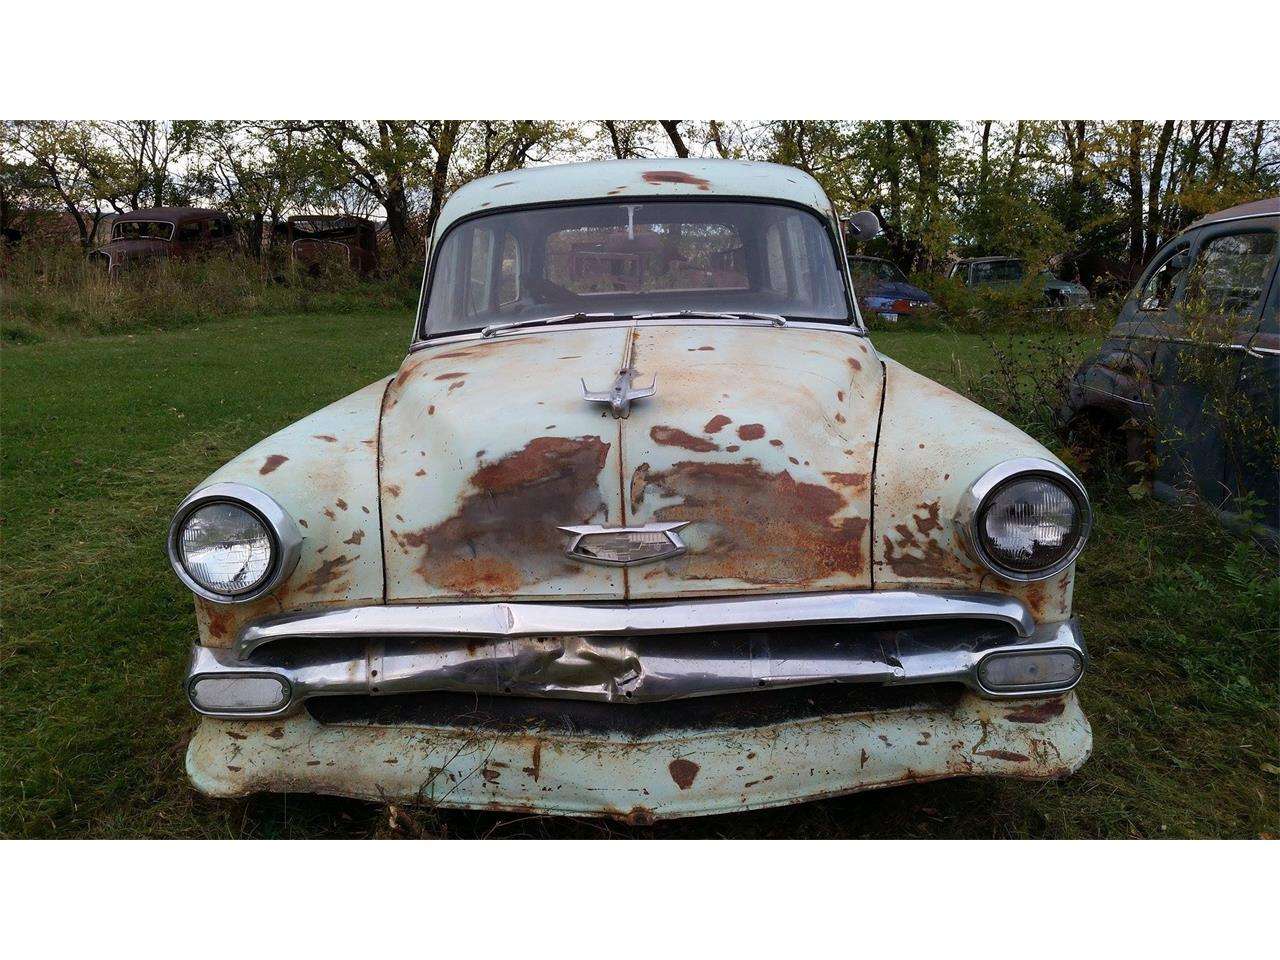 For Sale: 1954 Chevrolet Station Wagon in Thief River Falls, Minnesota